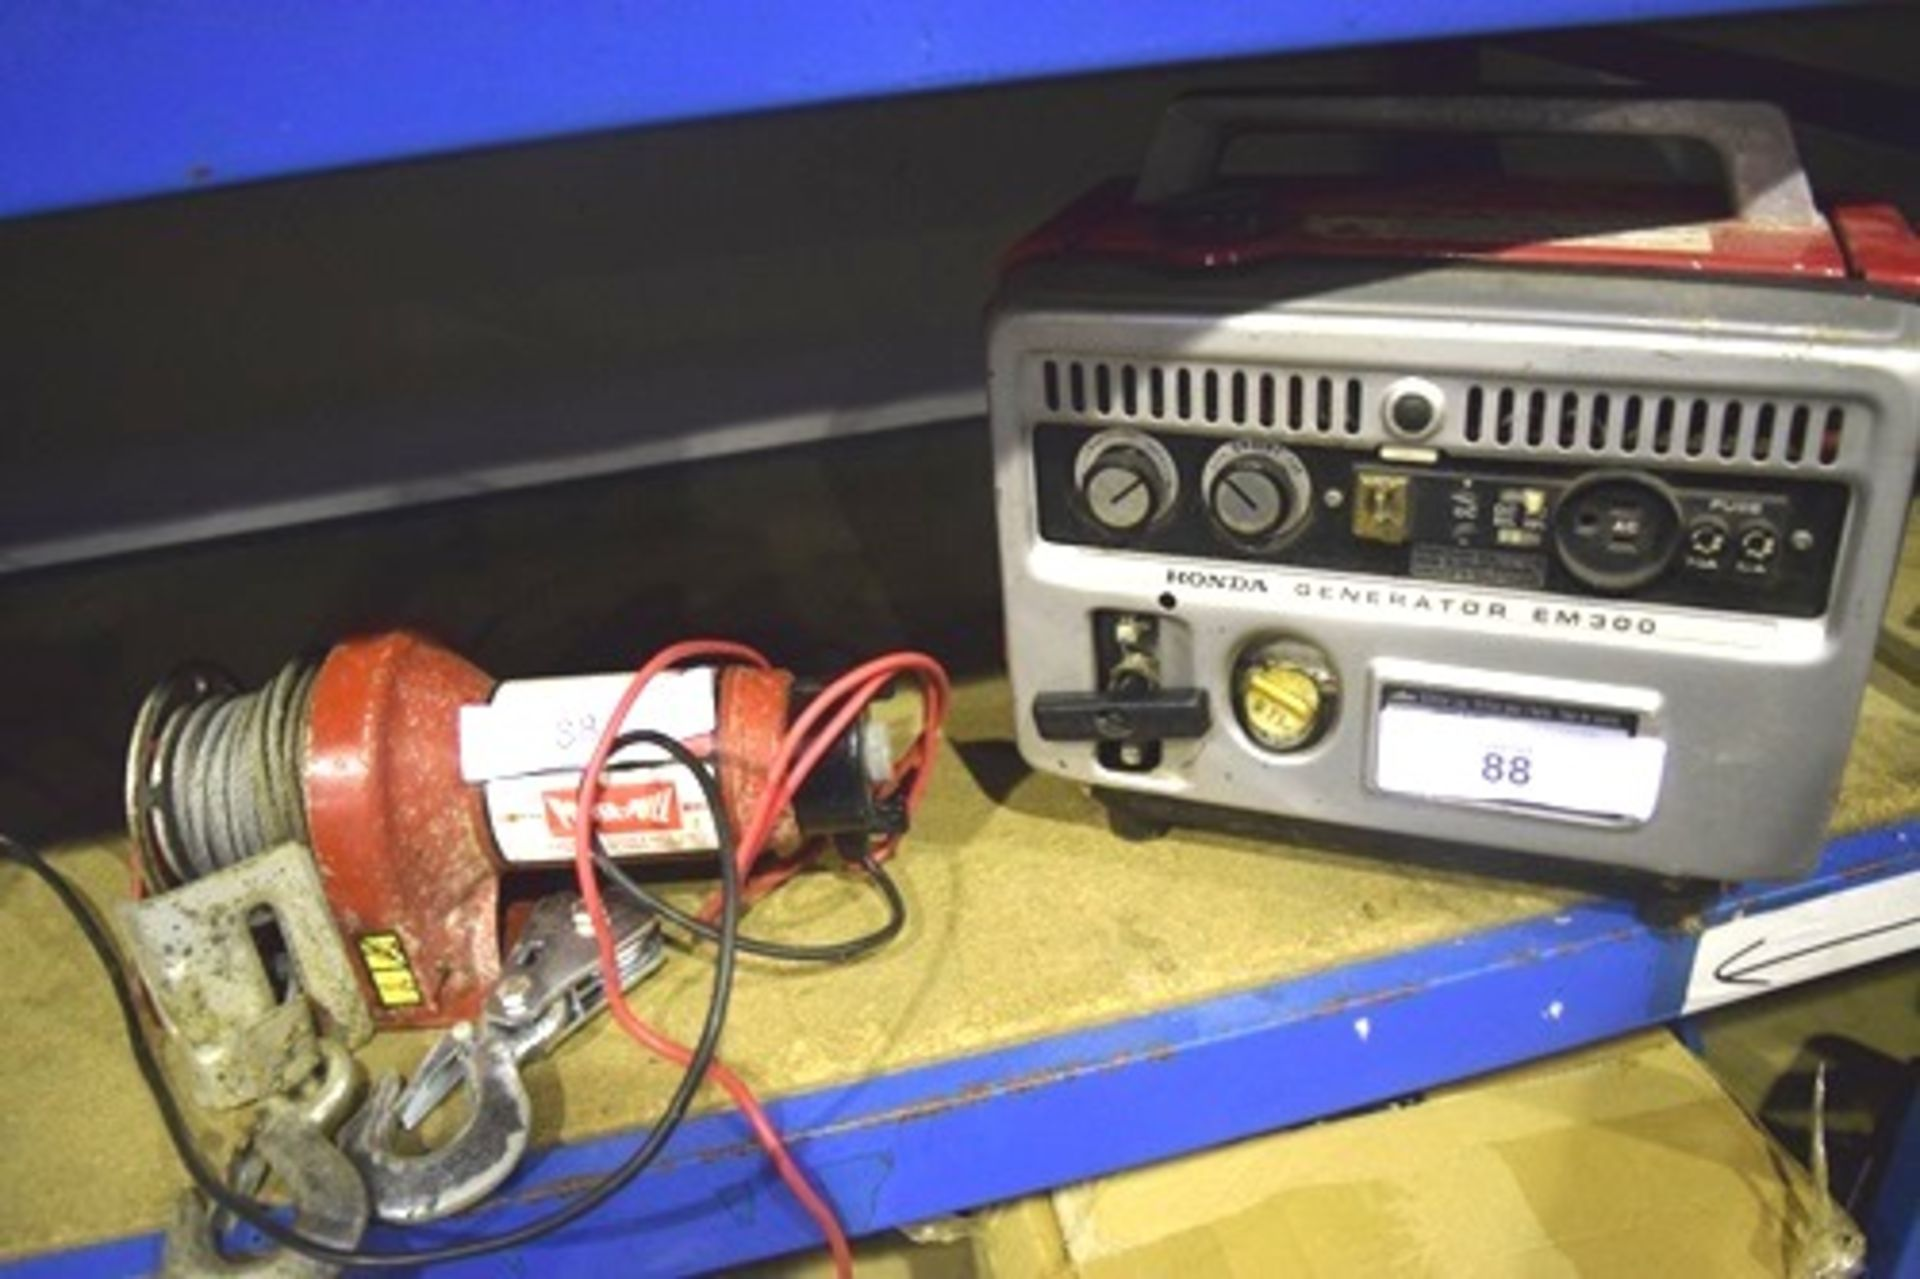 Lot 88 - Honda generator EM300 portable, Power Pull 12DC winch, model 17100 and spare hook - Second-hand (